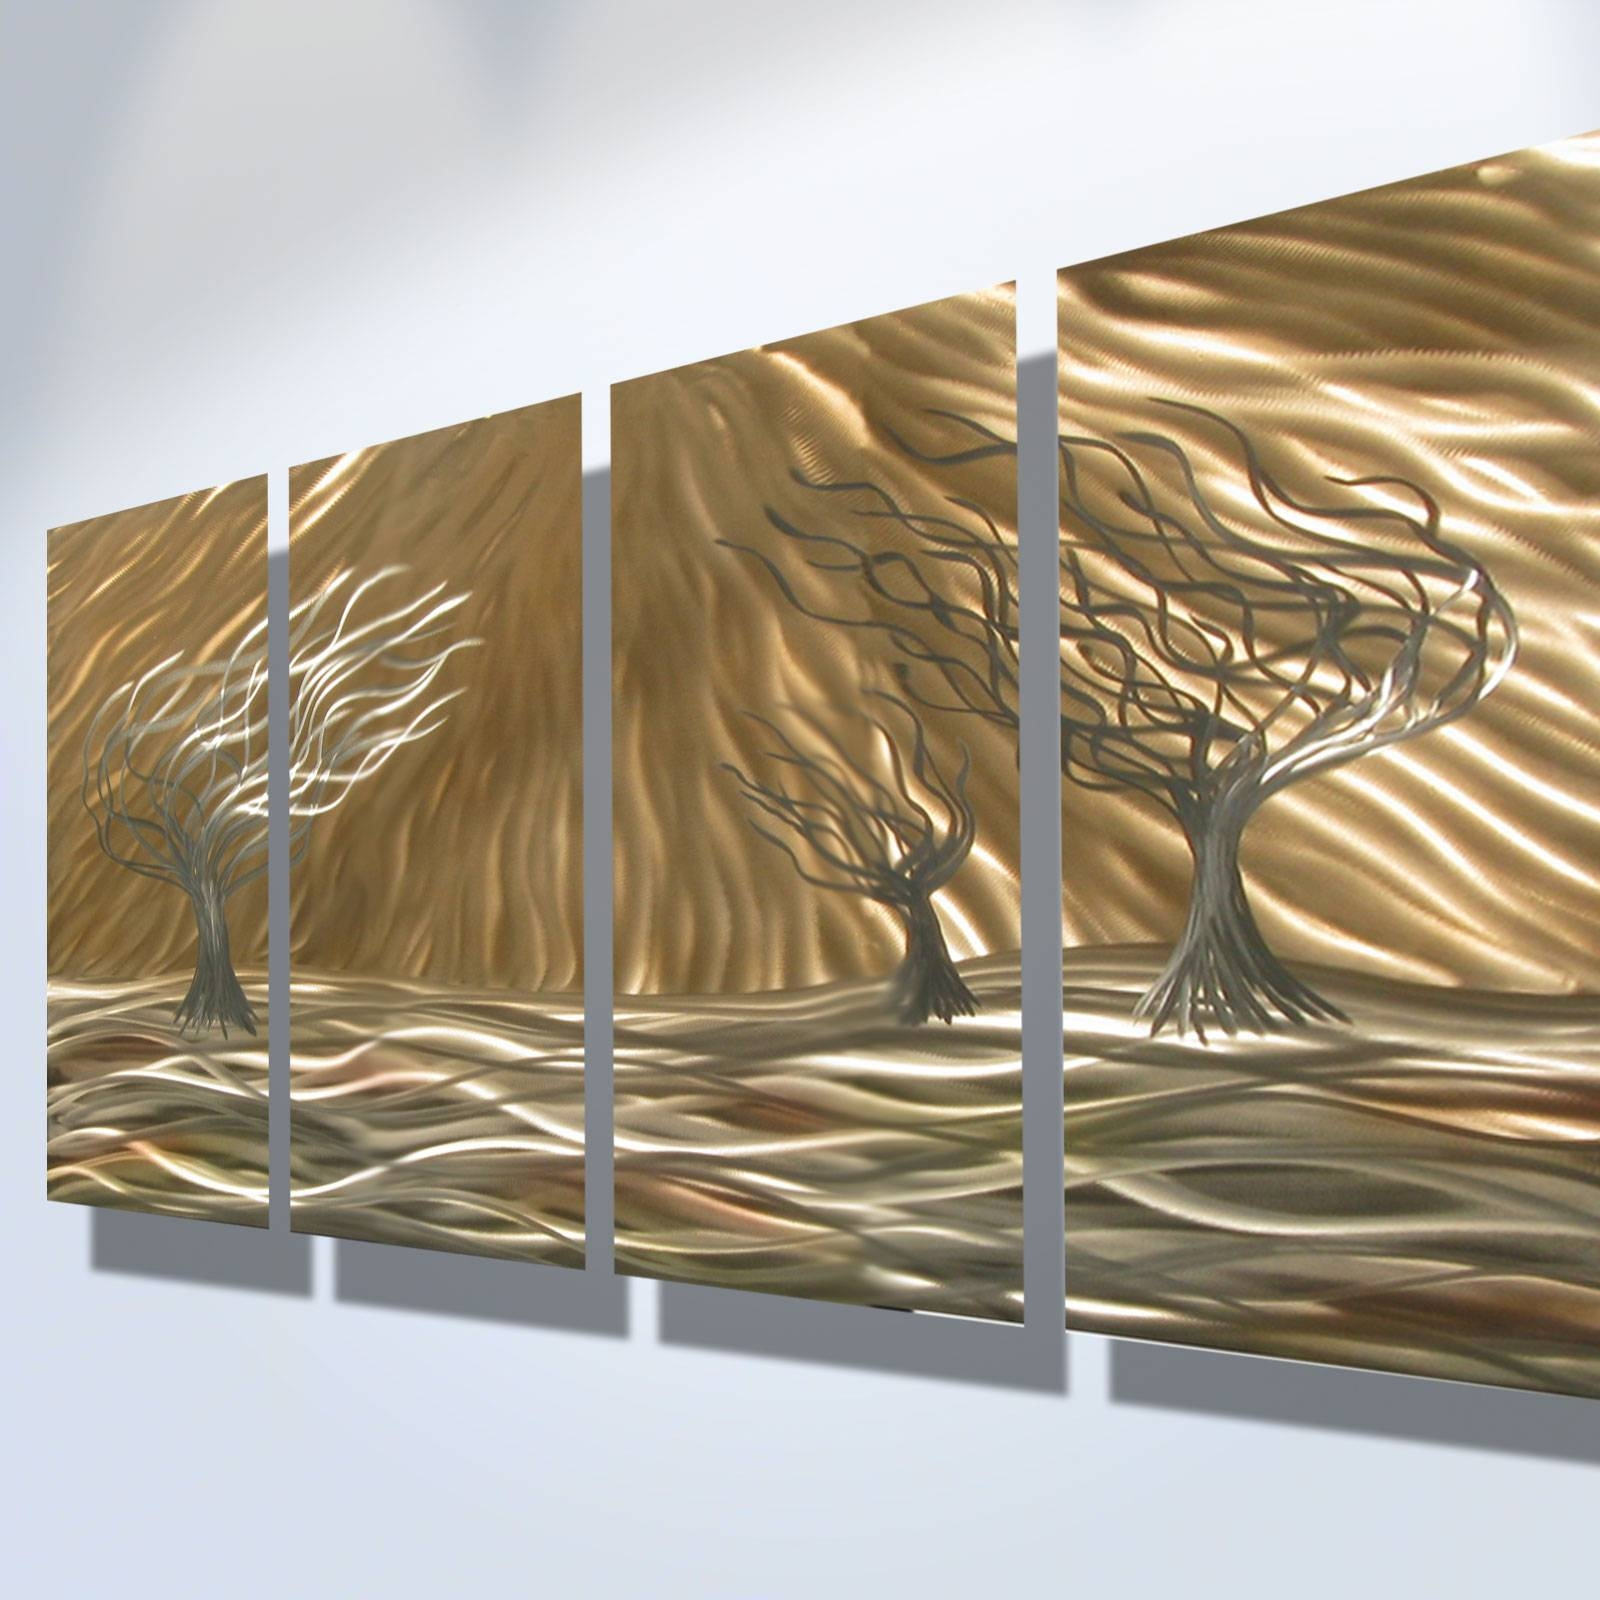 3 Trees 4 Panel – Abstract Metal Wall Art Contemporary Modern Pertaining To Current Contemporary Metal Wall Art Sculptures (View 15 of 20)